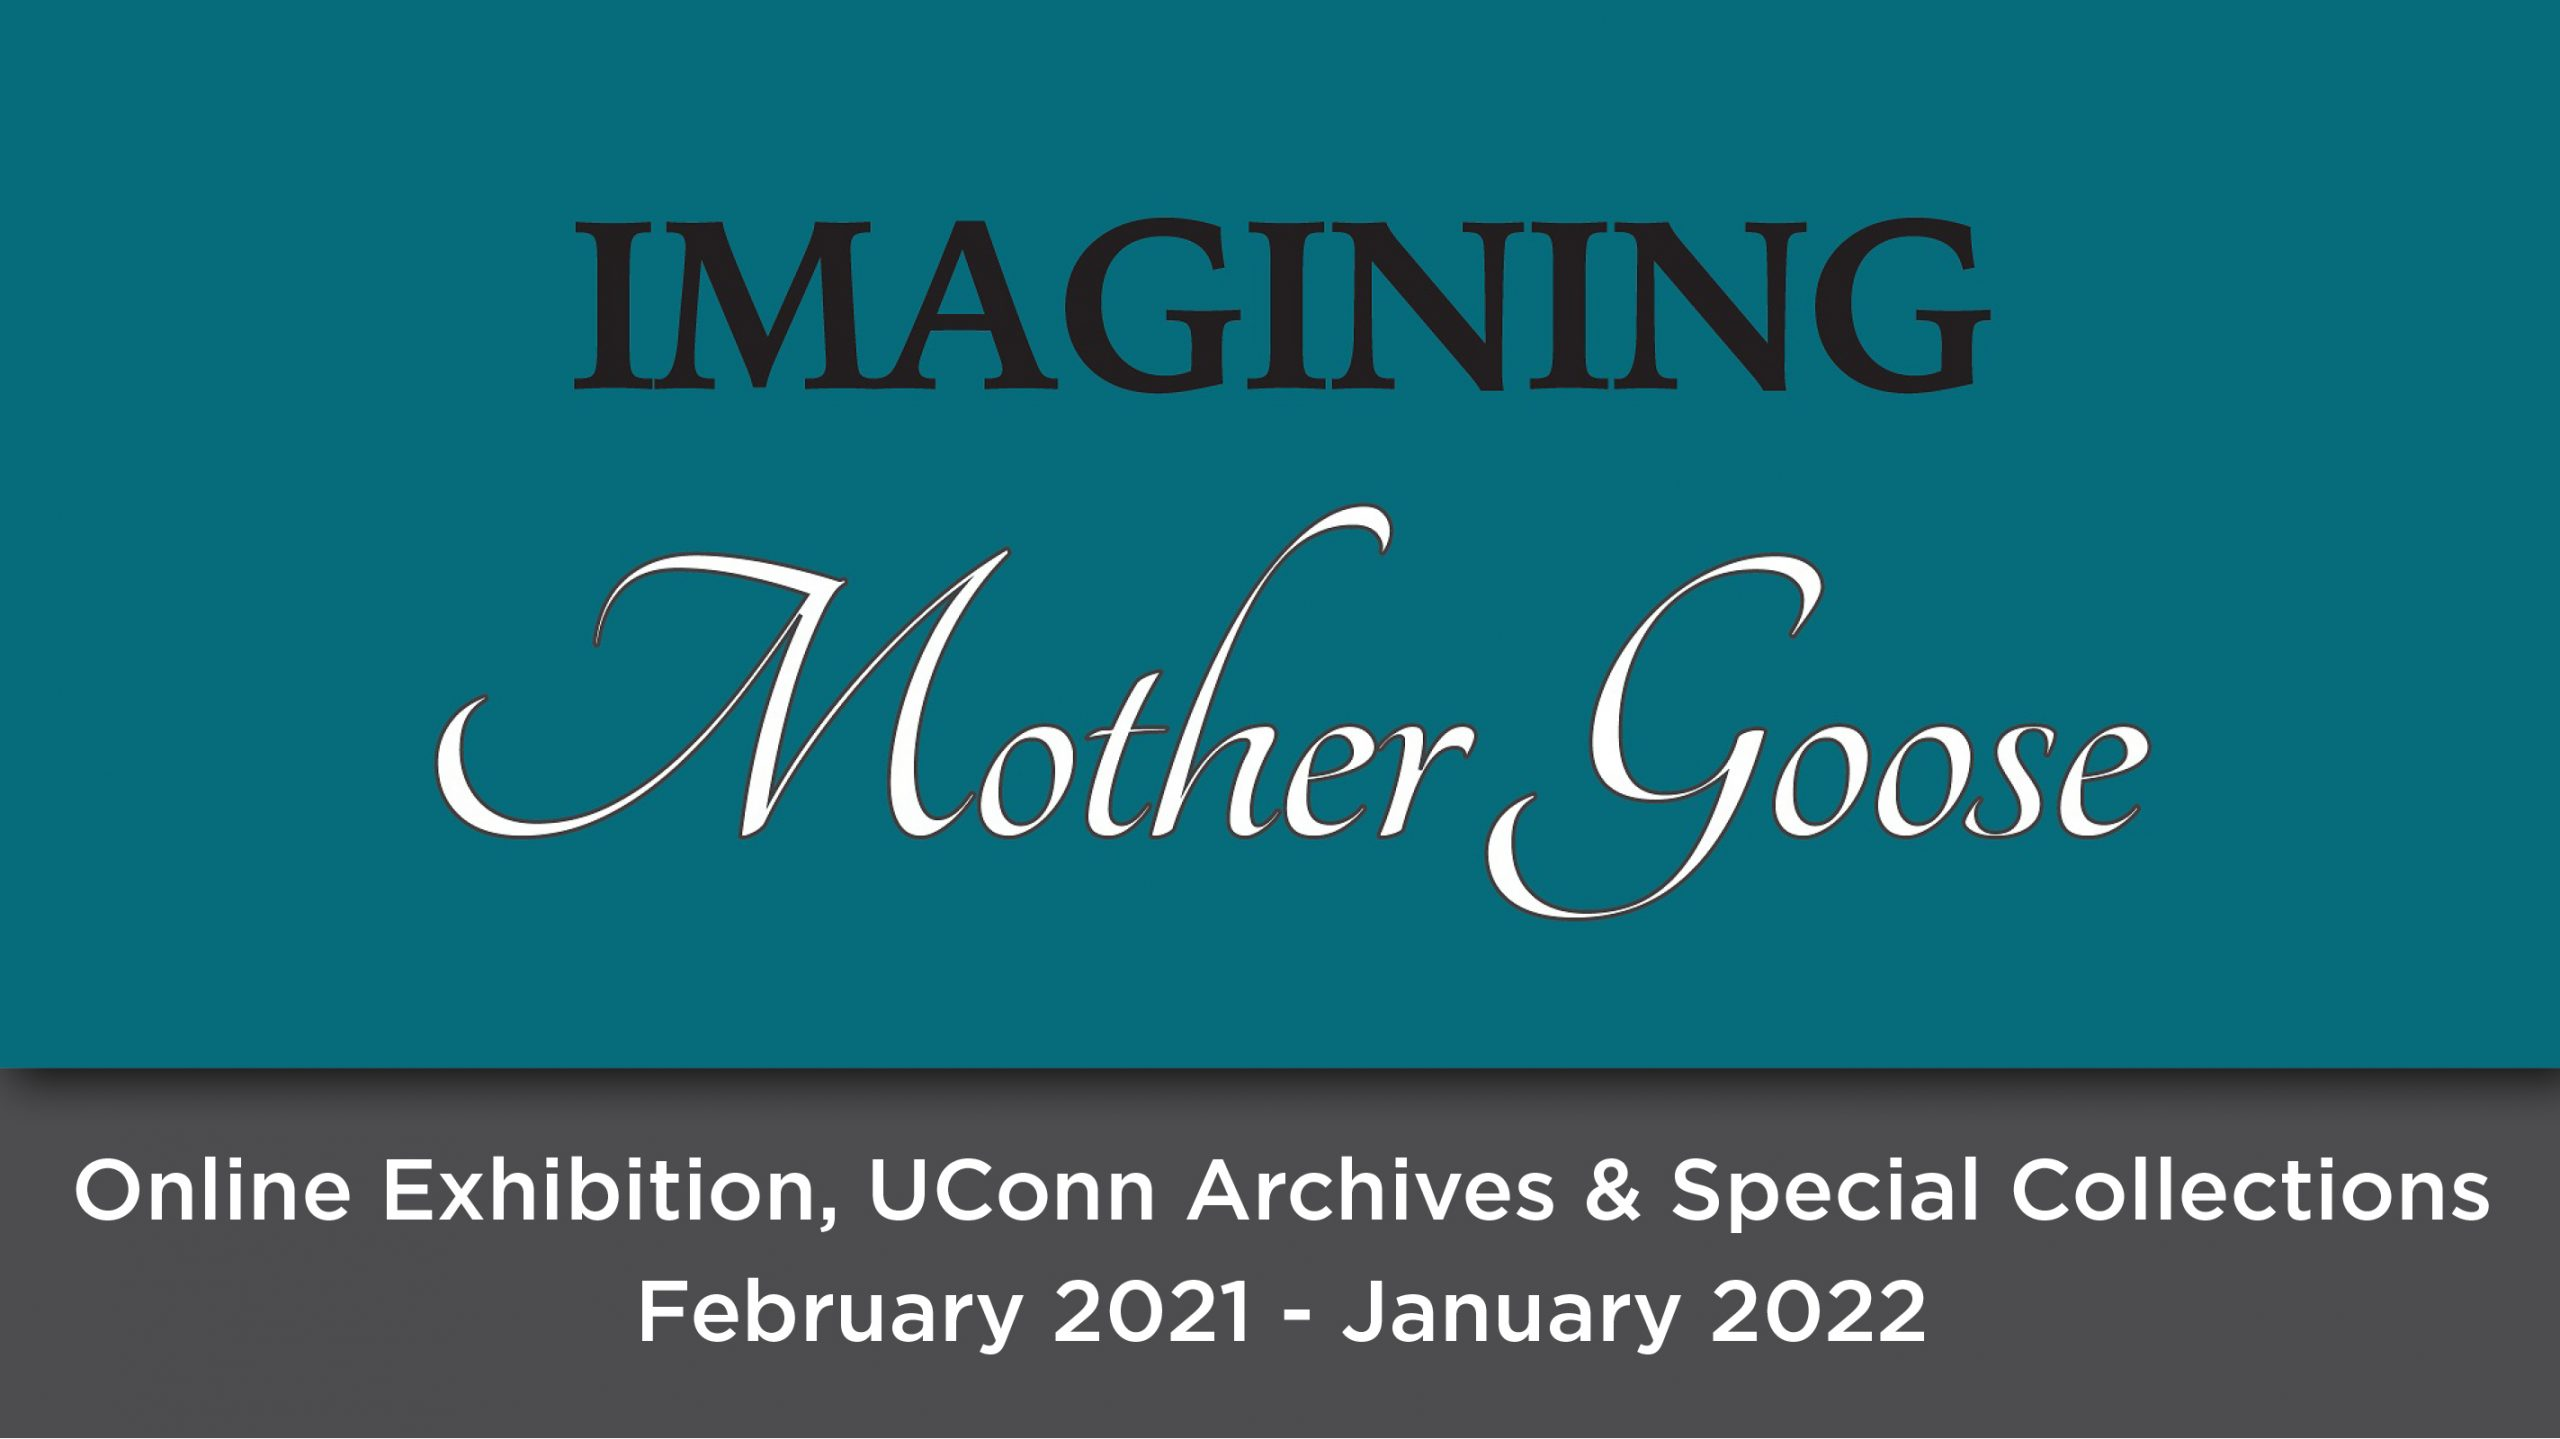 Imaging mother goose, Online Exhibition, UConn Archives & Special Collections February 2021 - January 2022